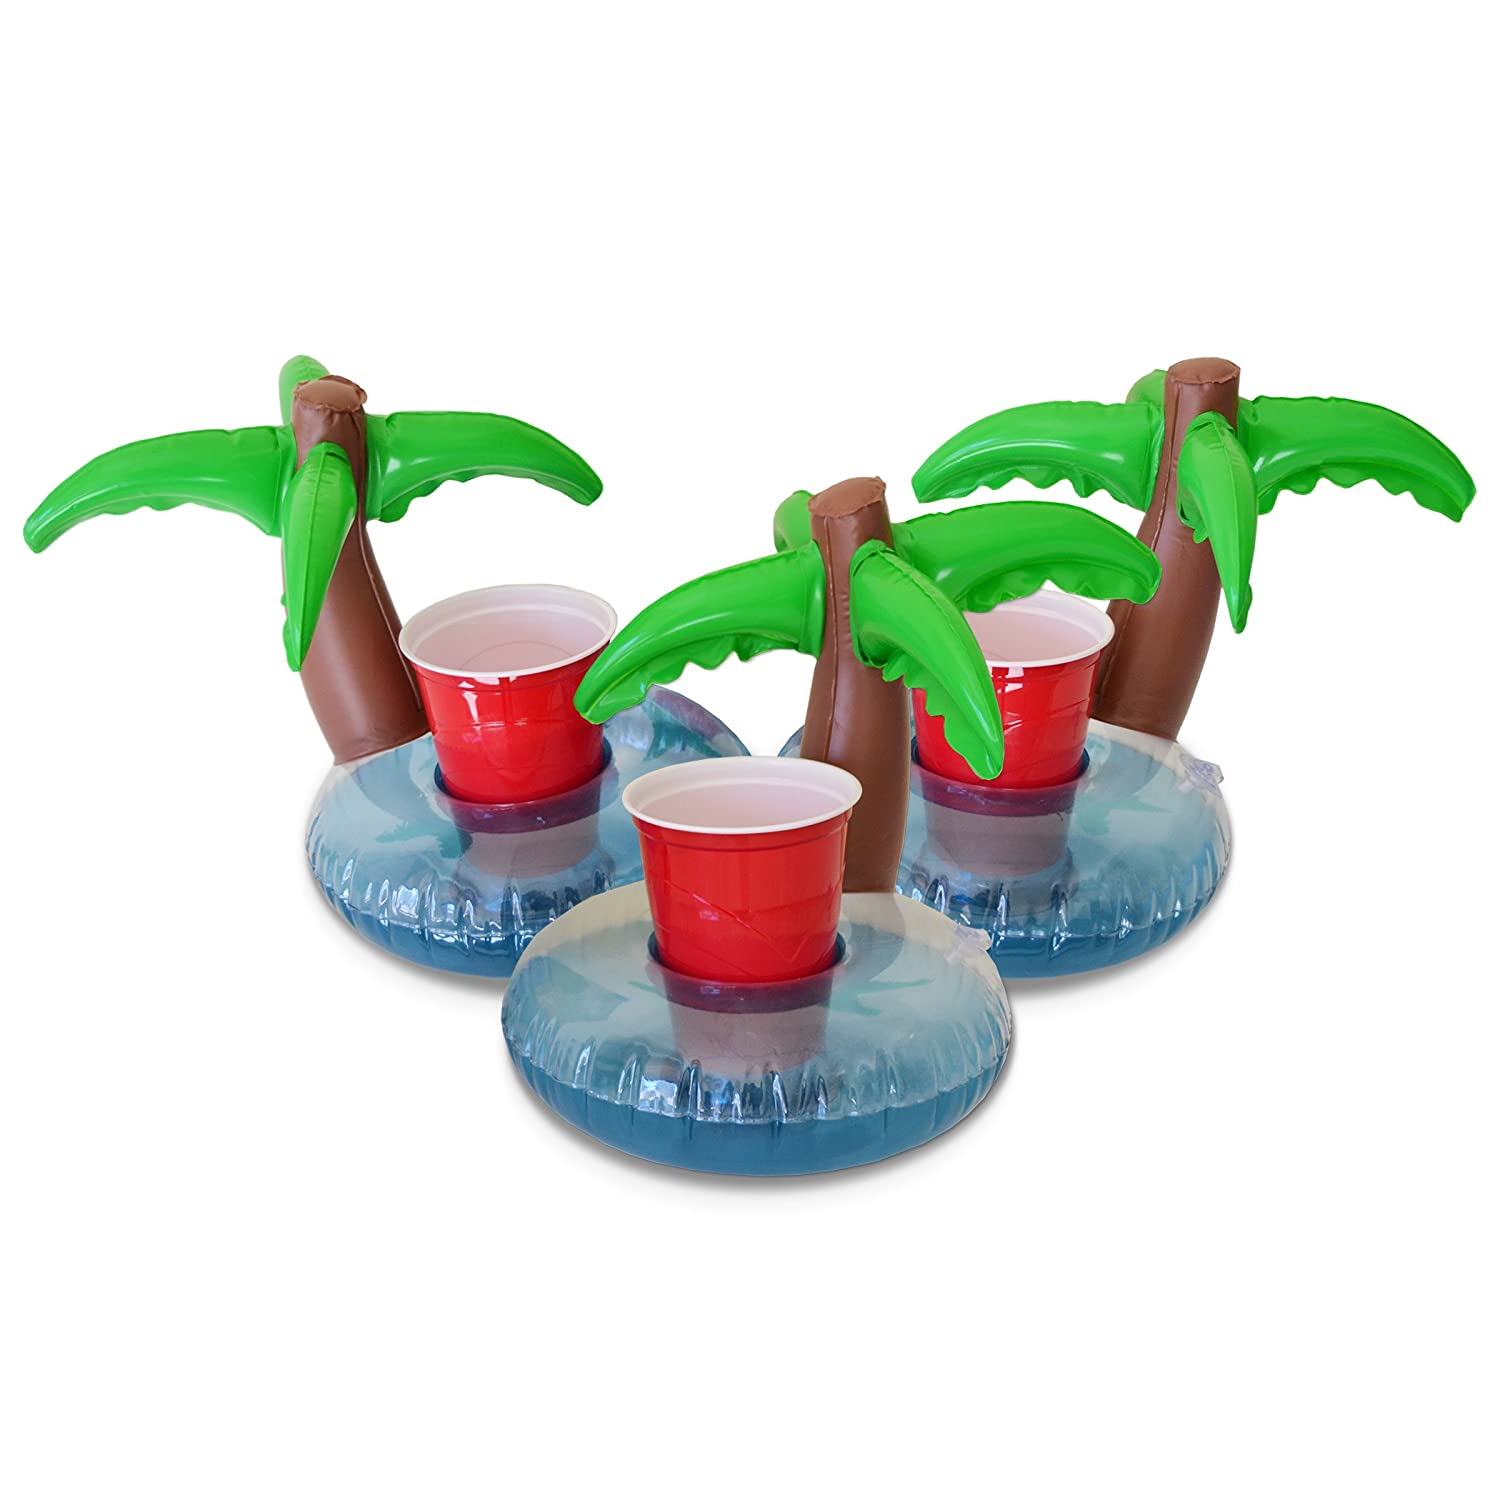 GoFloats Inflatable Pool Drink Holders (3 Pack) Designed in The US | Huge Selection from Unicorn, Flamingo, Palm and More | Float Your Hot Tub Drinks in Style!